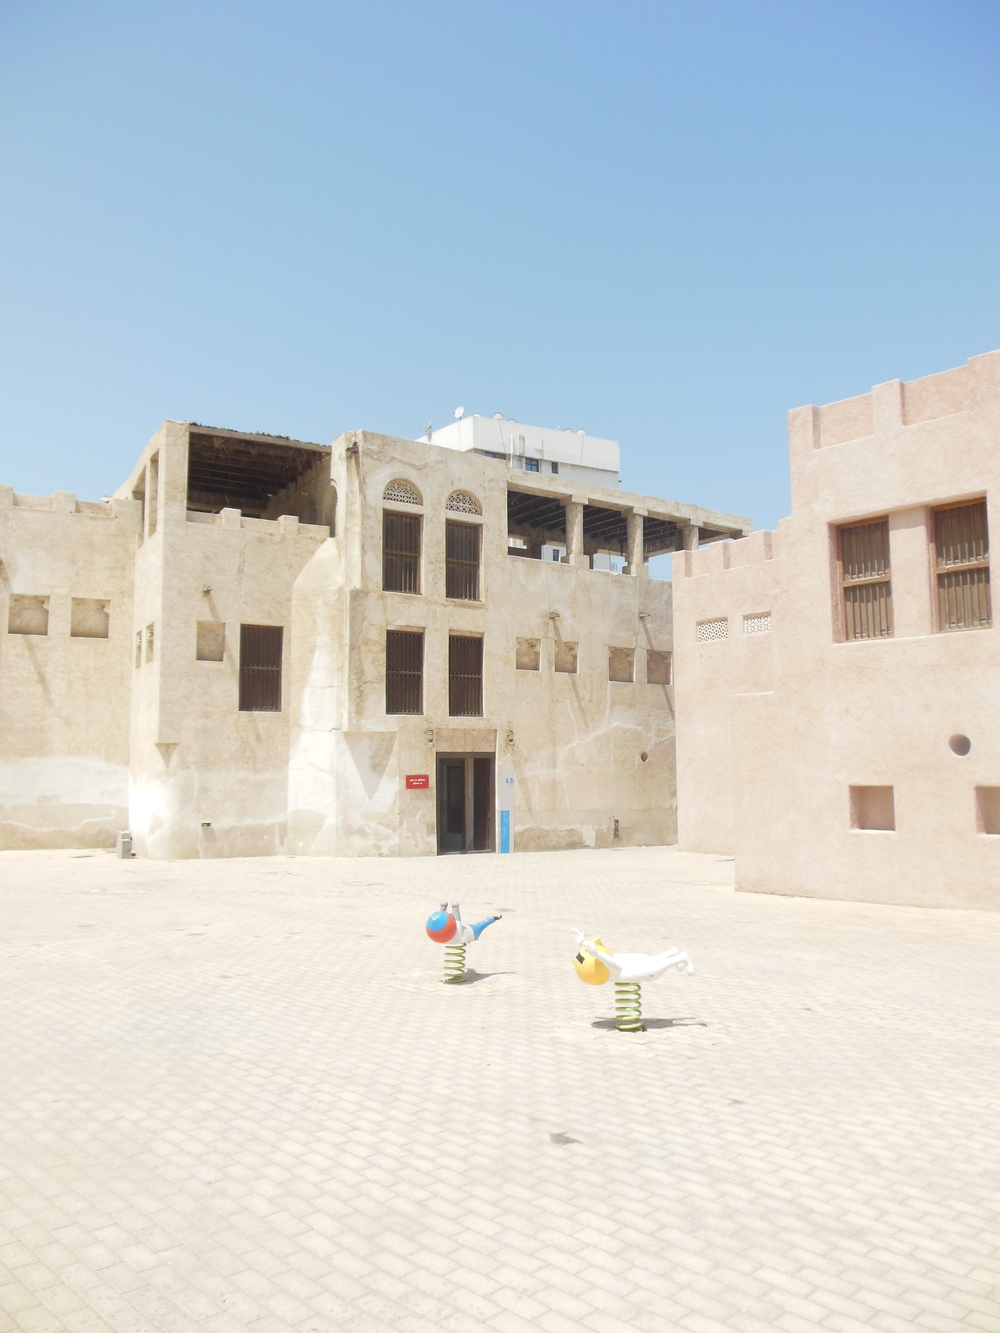 Courtyard in Sharjah Heritage Area. Photo: Lucy Rees